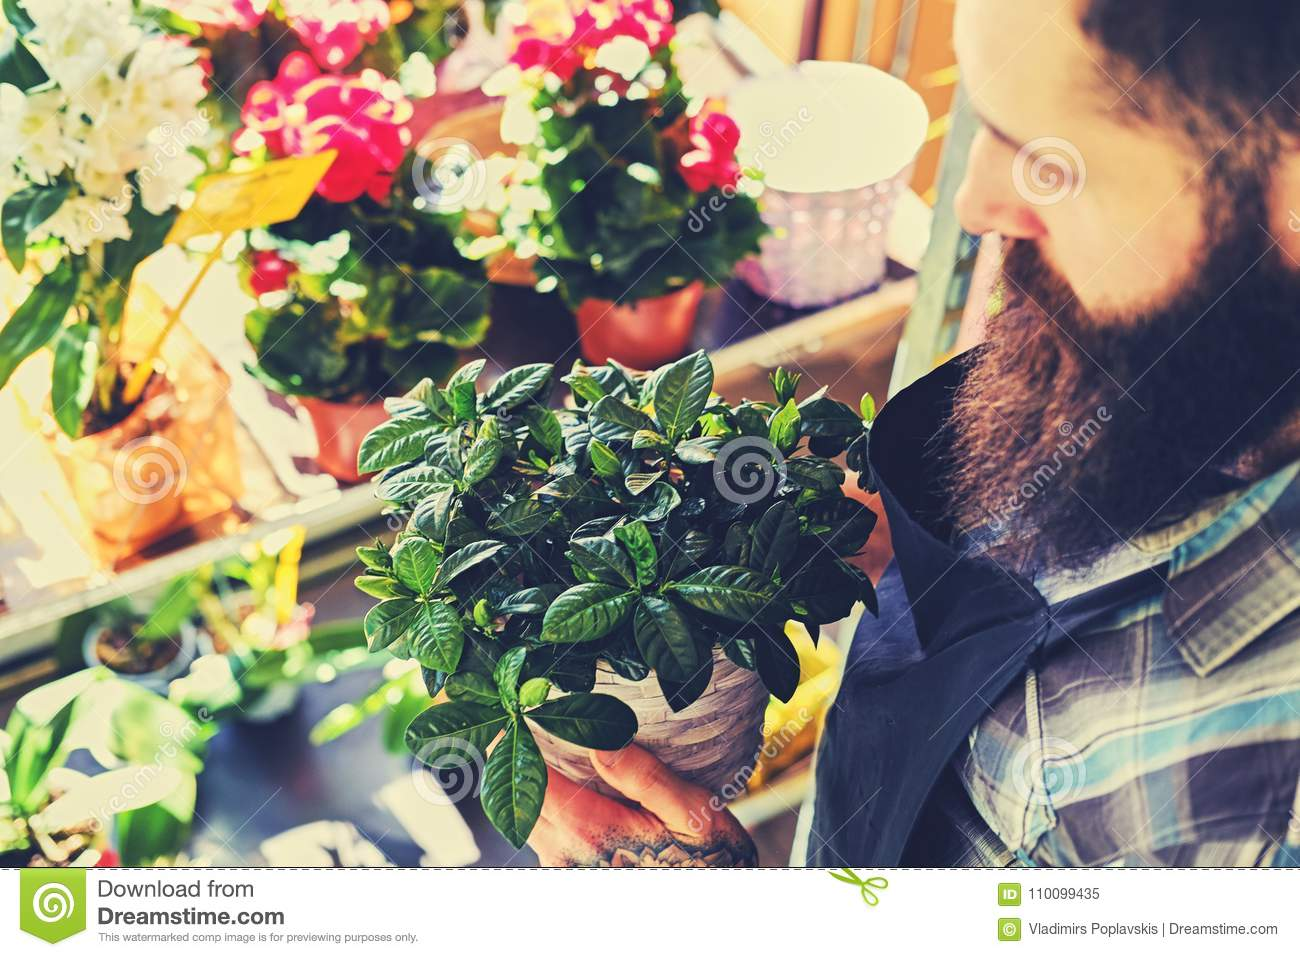 Brutal bearded flower seller with tattoos on his arms in a flowe